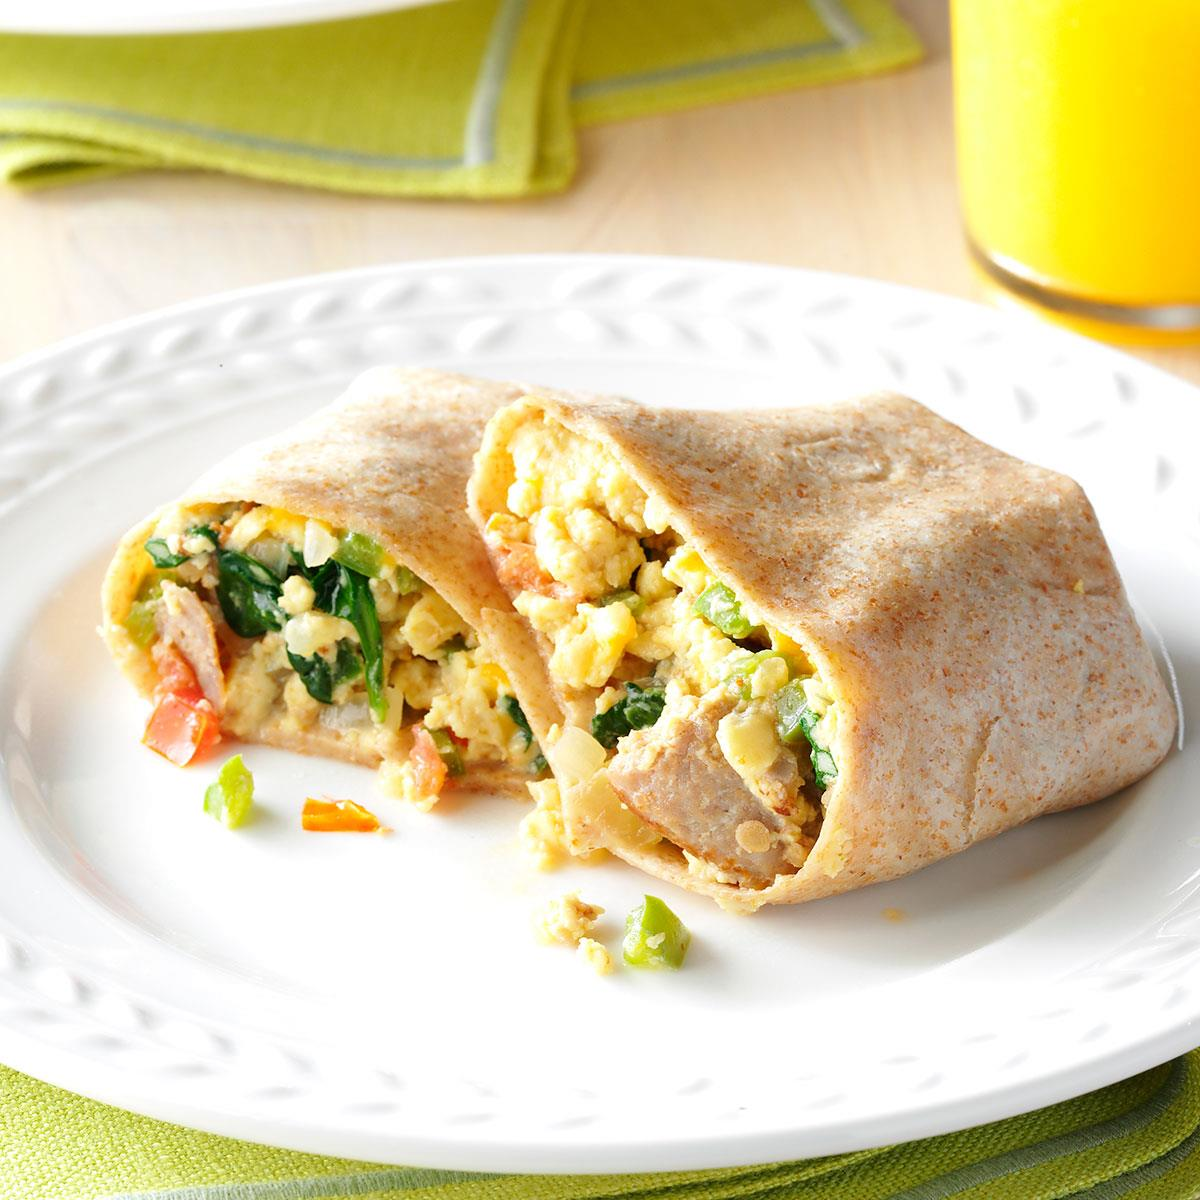 Easy Italian Desserts For A Crowd: Italian Sausage Breakfast Wraps Recipe